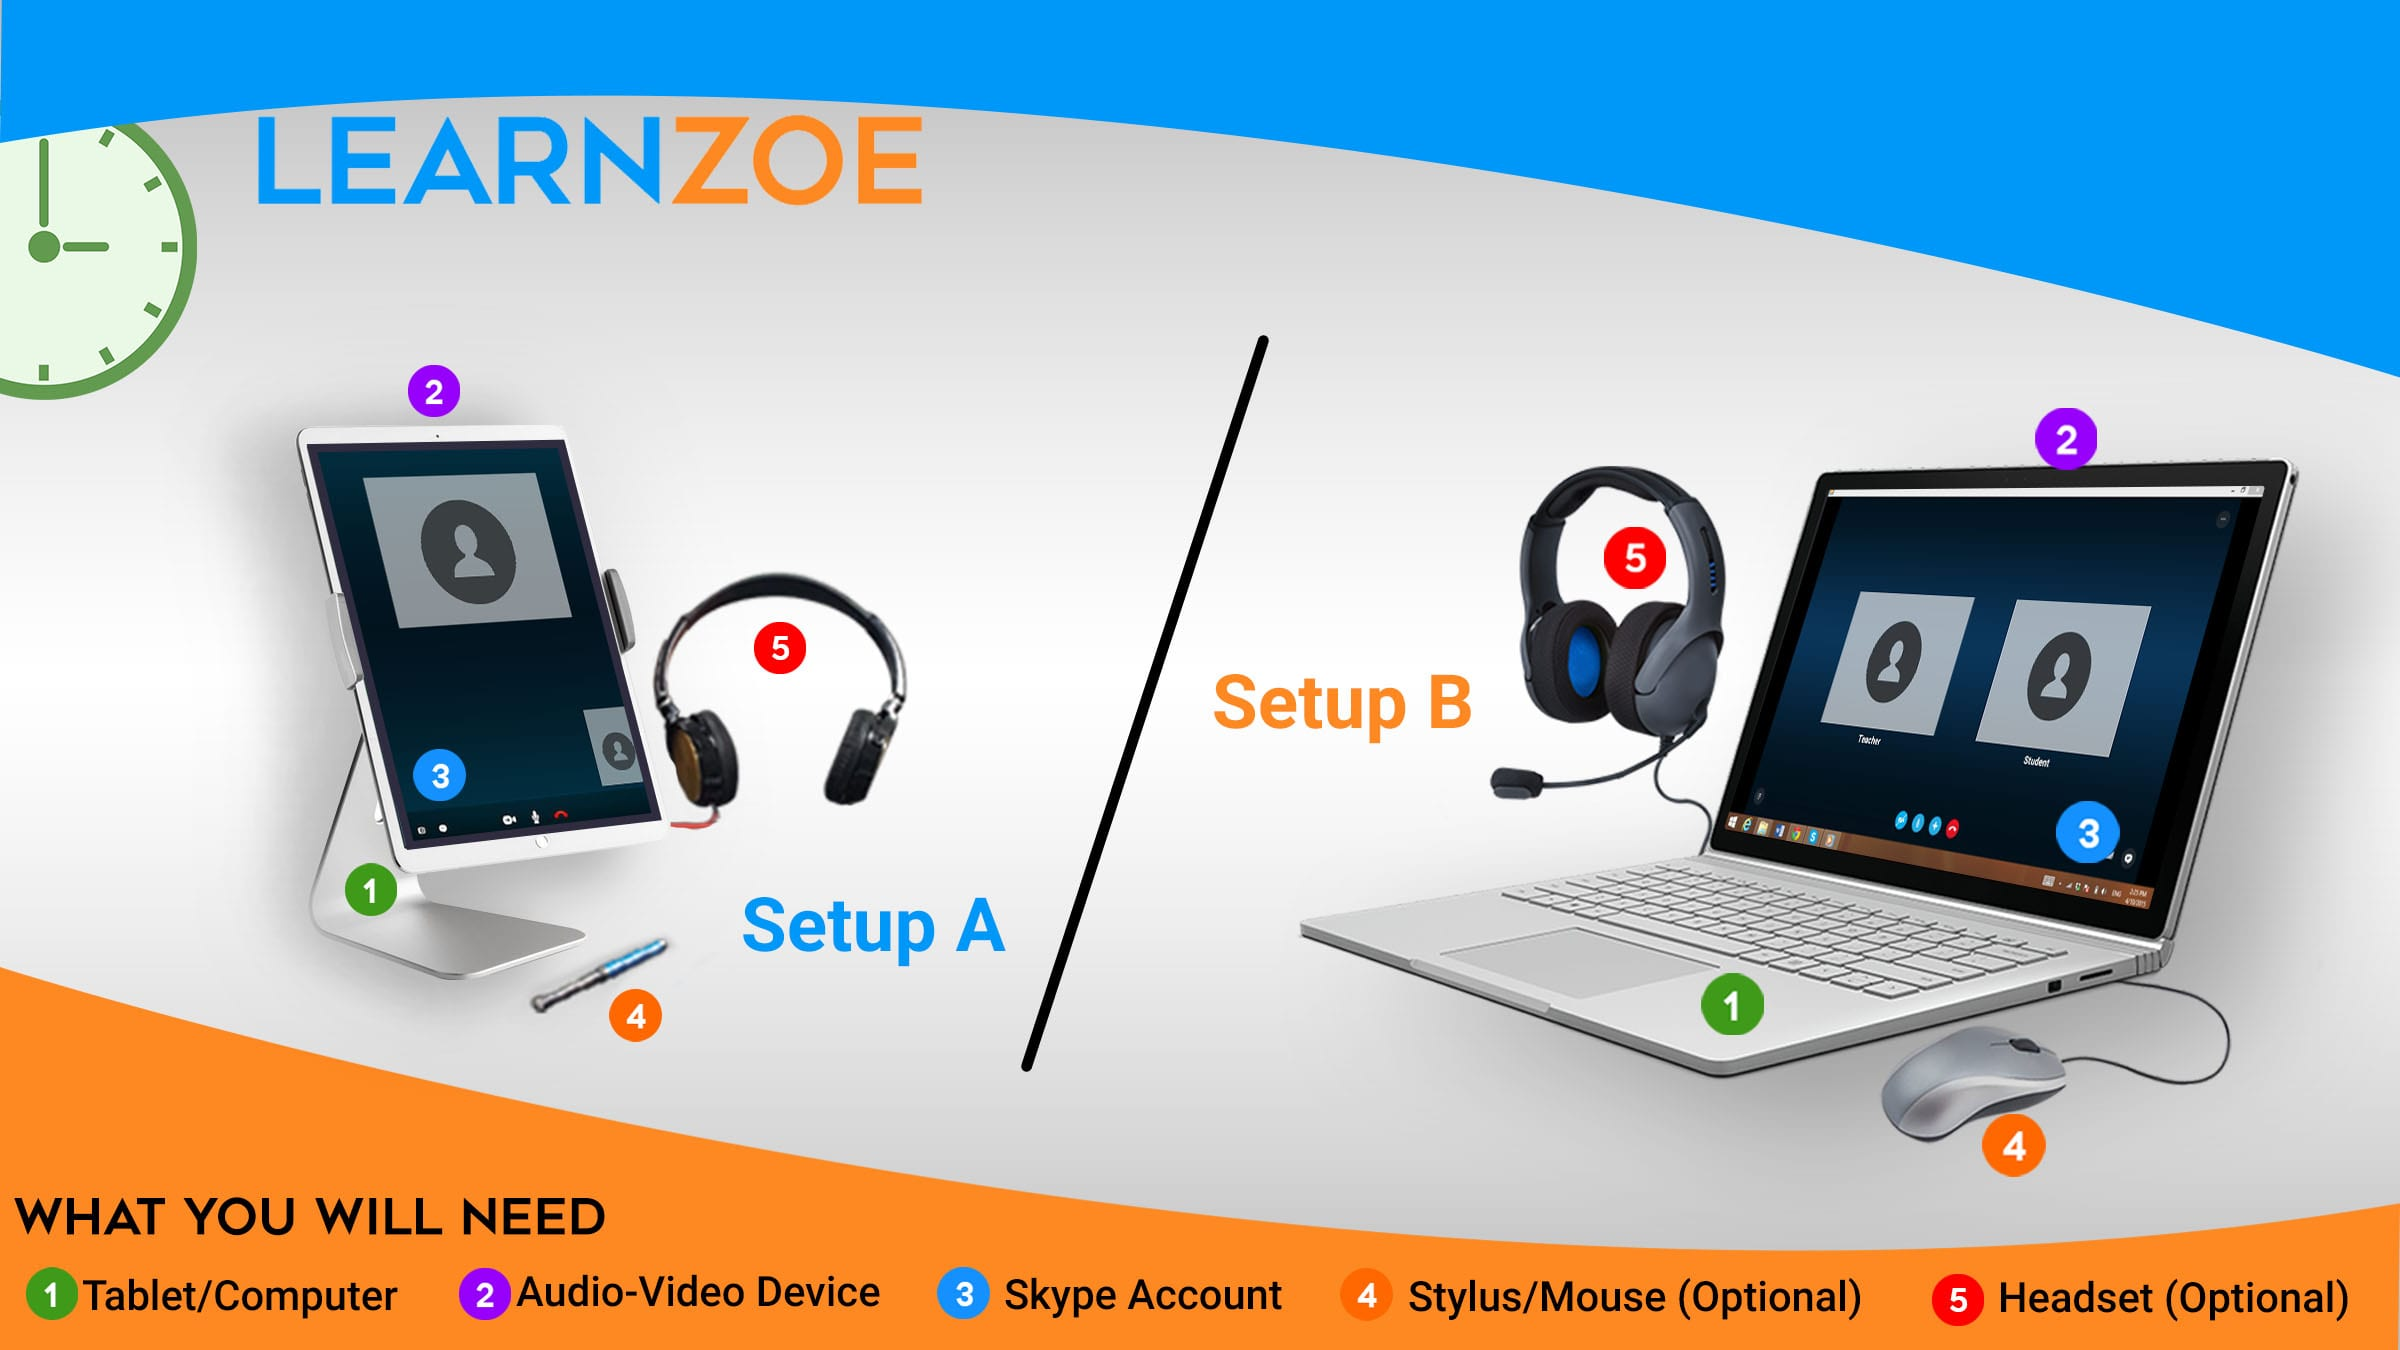 A tablet, headset, stylus and skype account are needed for Audio Learn Zoe session